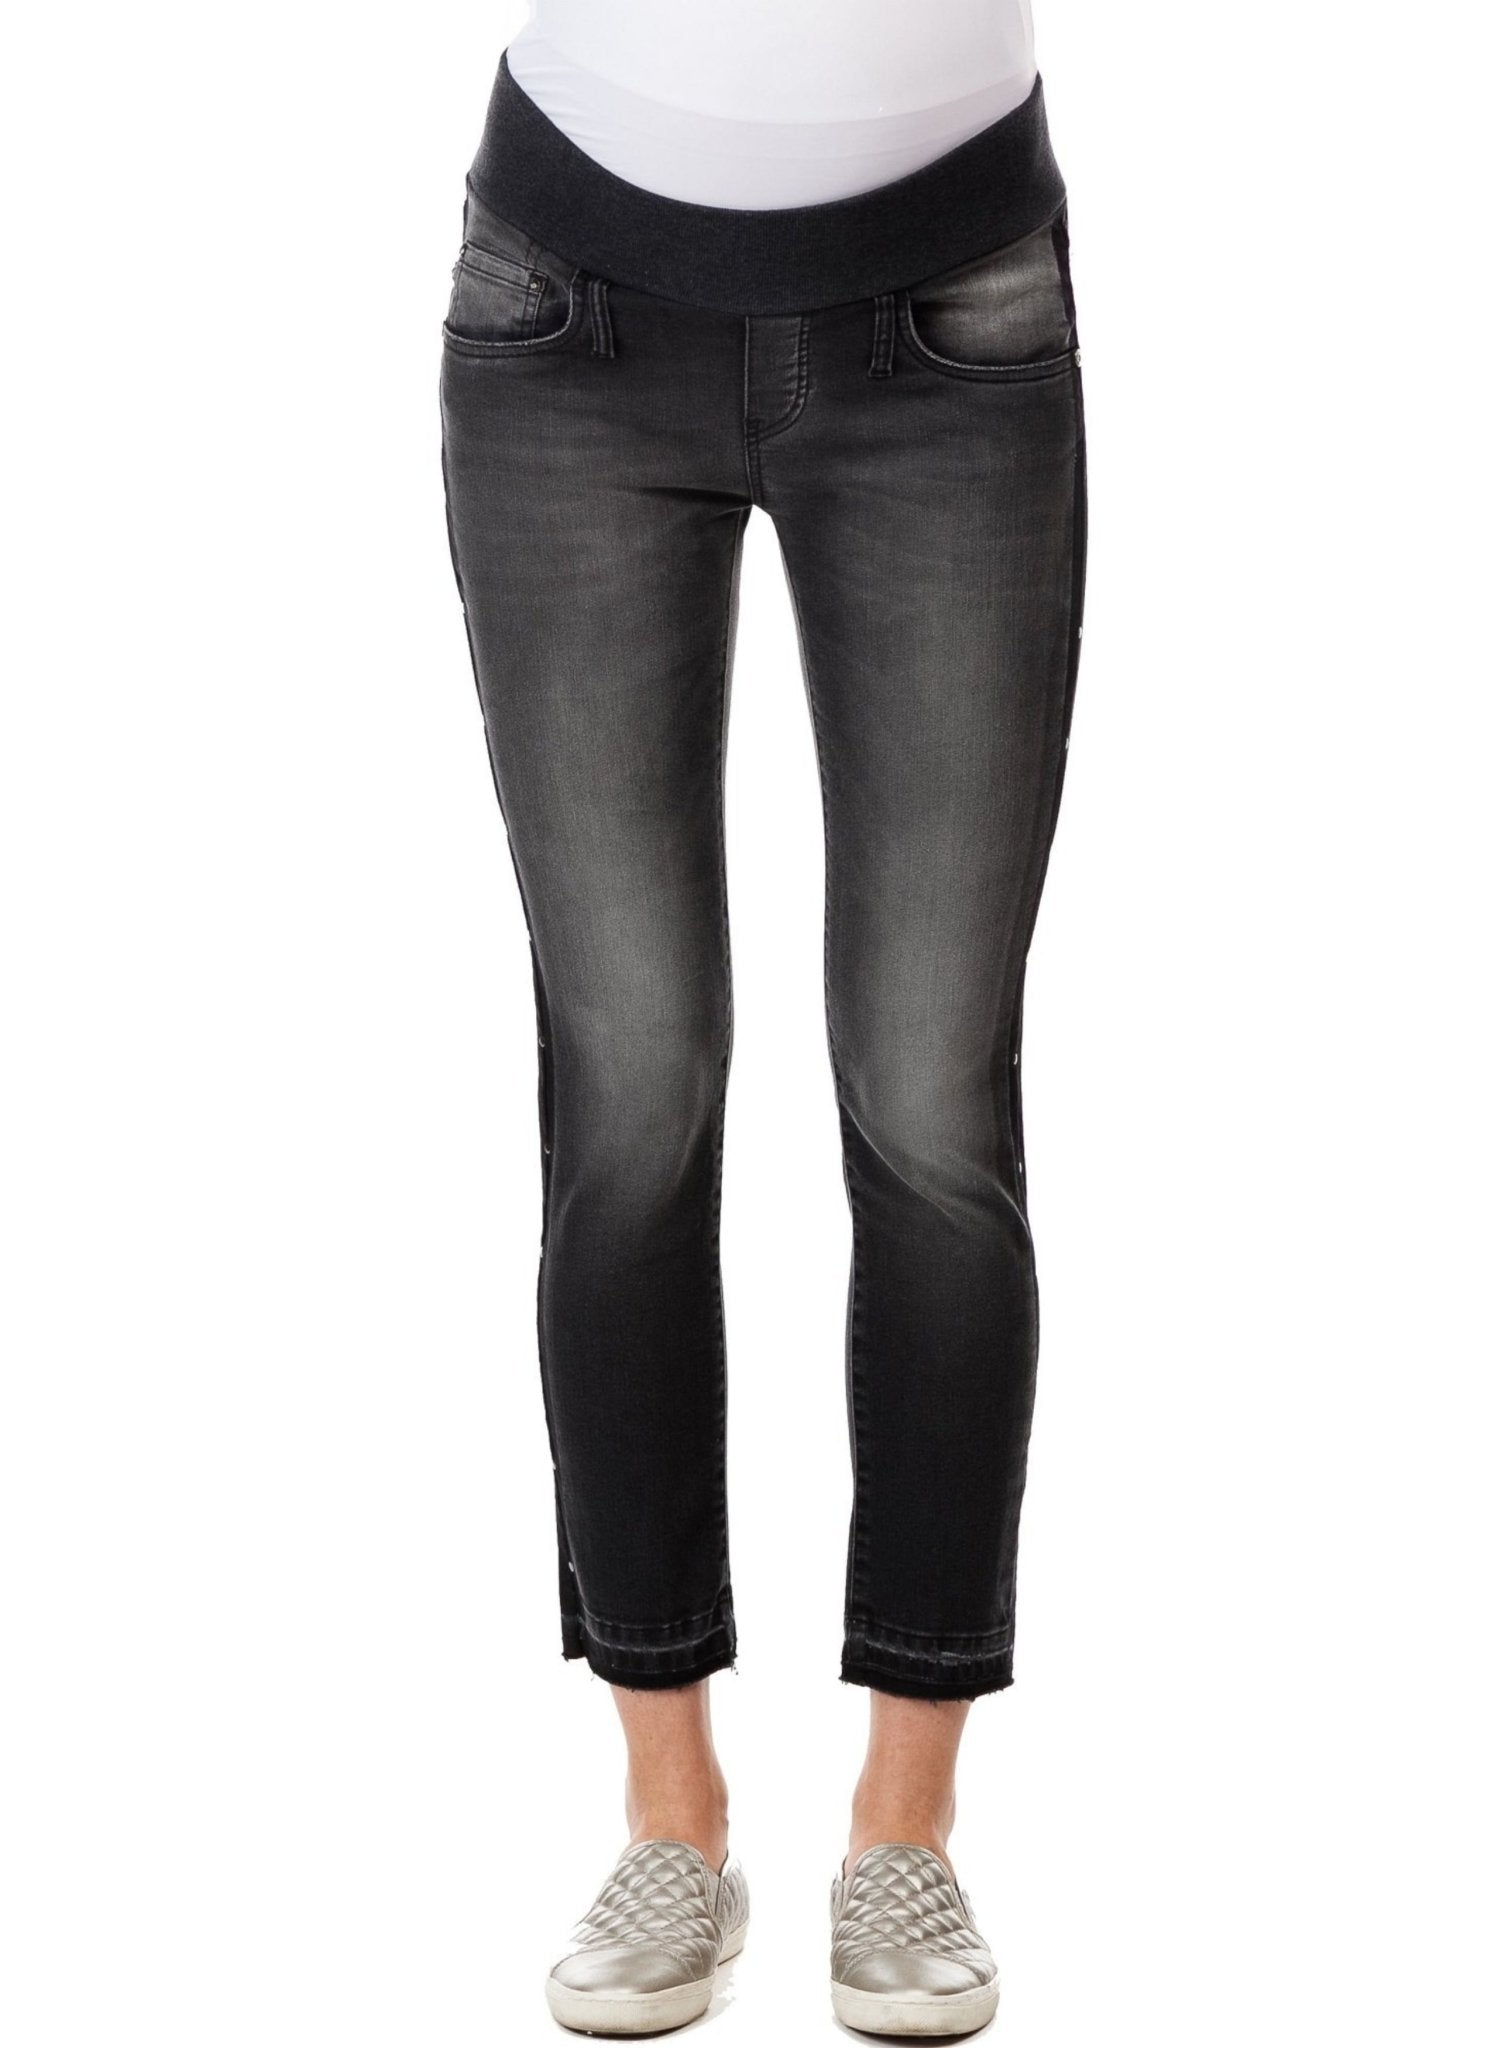 Hudson Maternity Jeans - Black Band - Mums and Bumps